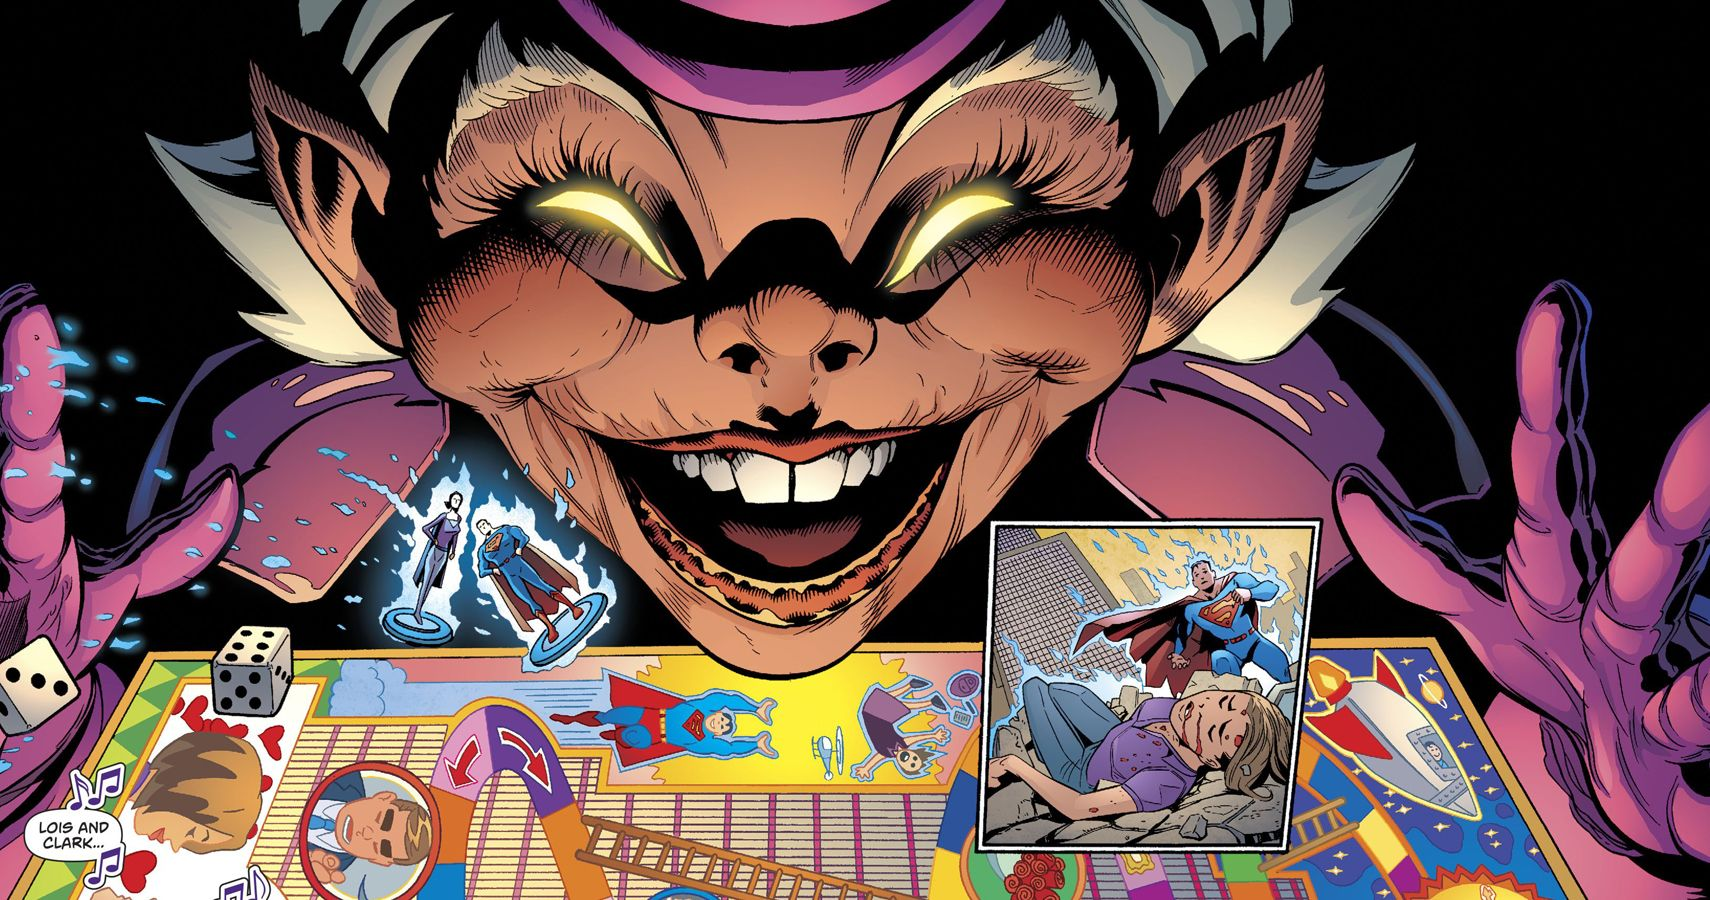 Despite the short and stumpy appearance of Mr. Mxyzptlk, he has unlimited powers and can even destroy Superman.